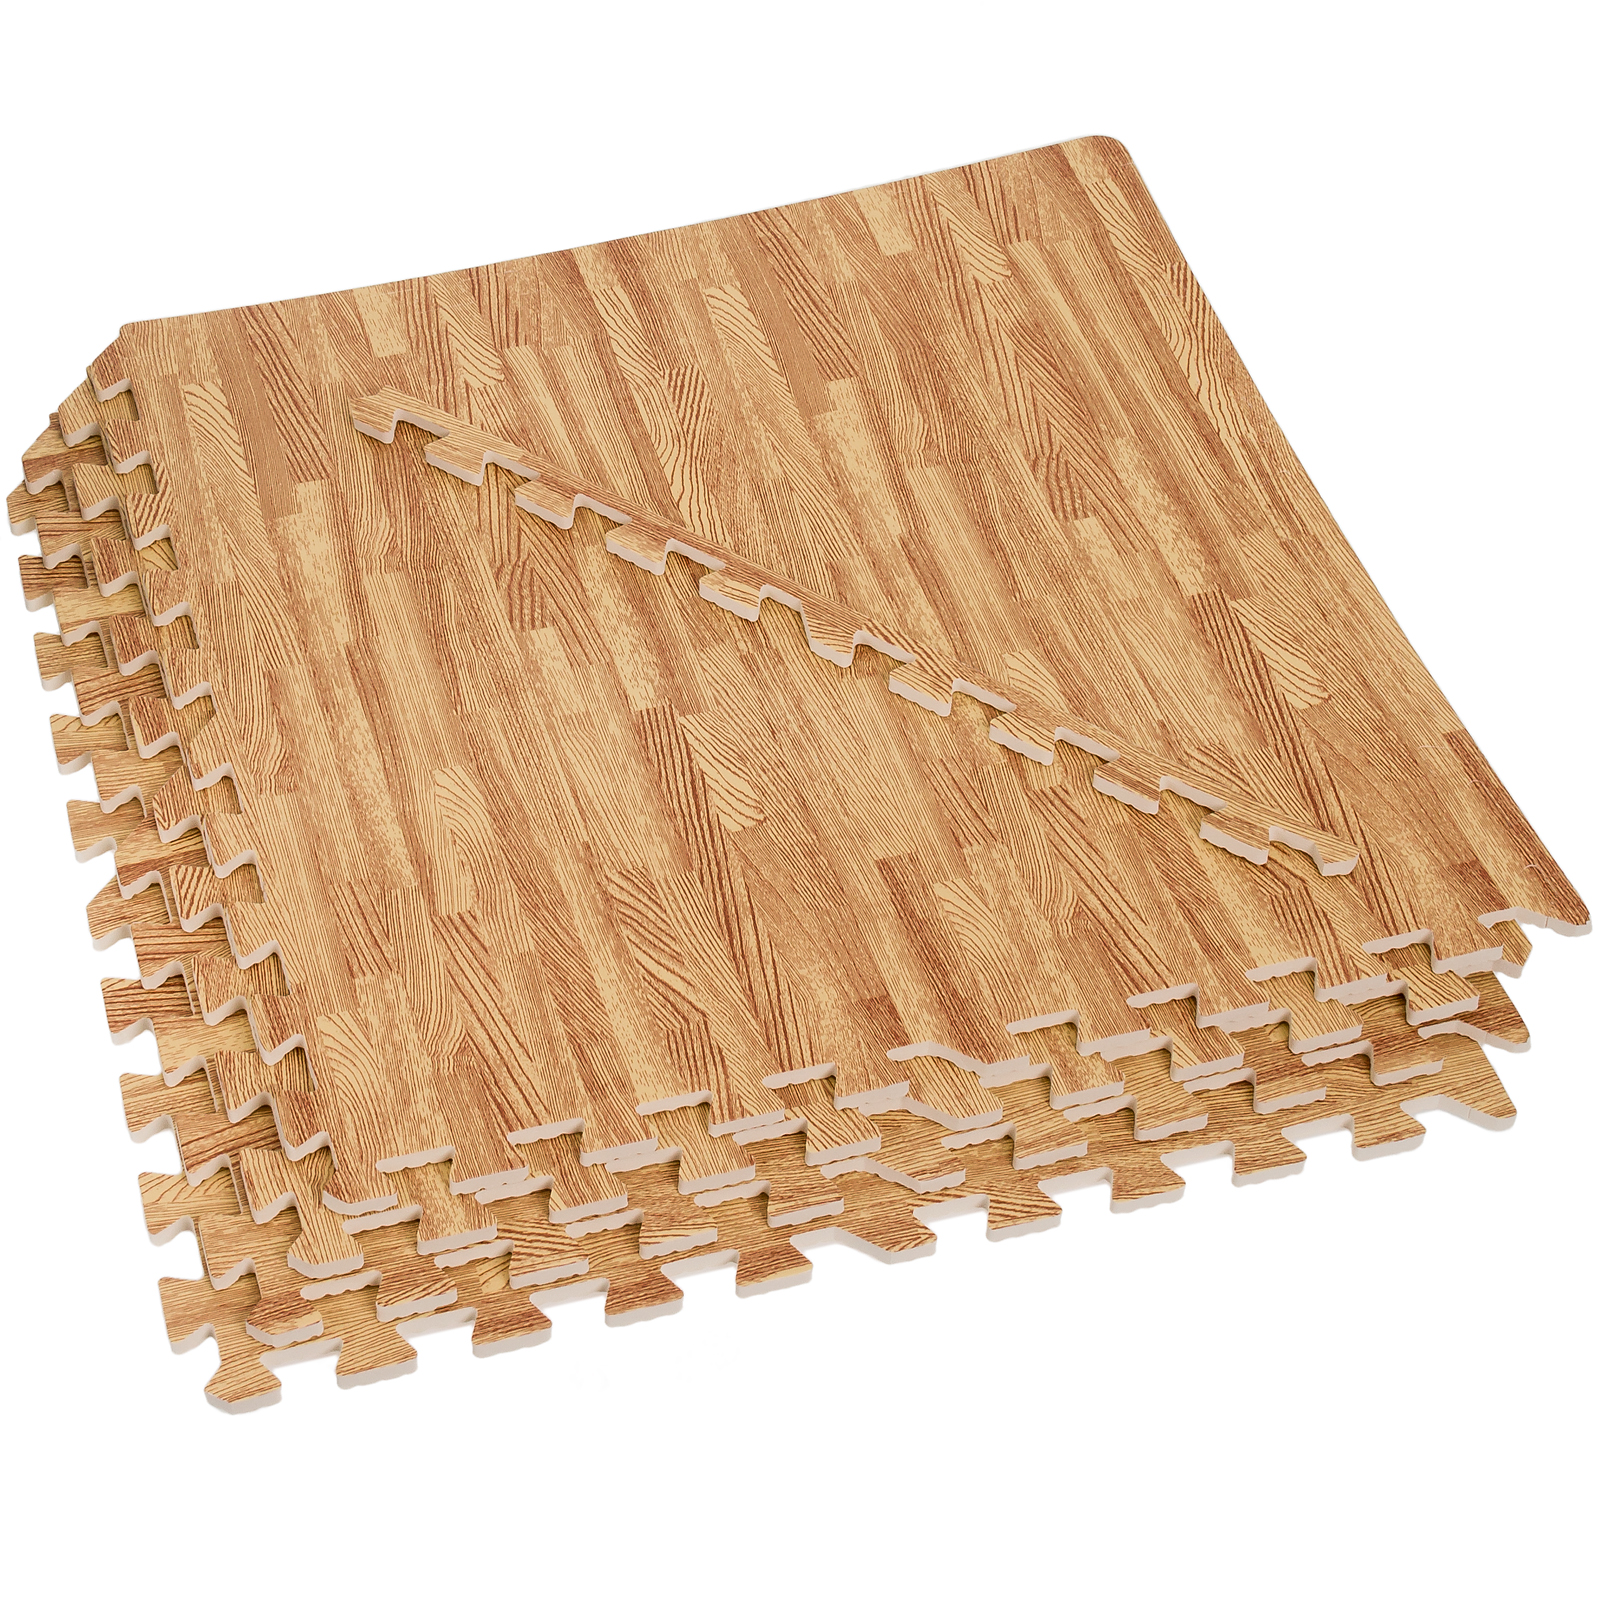 NEW EVA Foam Exercise Mats - 96 Square Foot Light Wood Grain Interlocking Mats